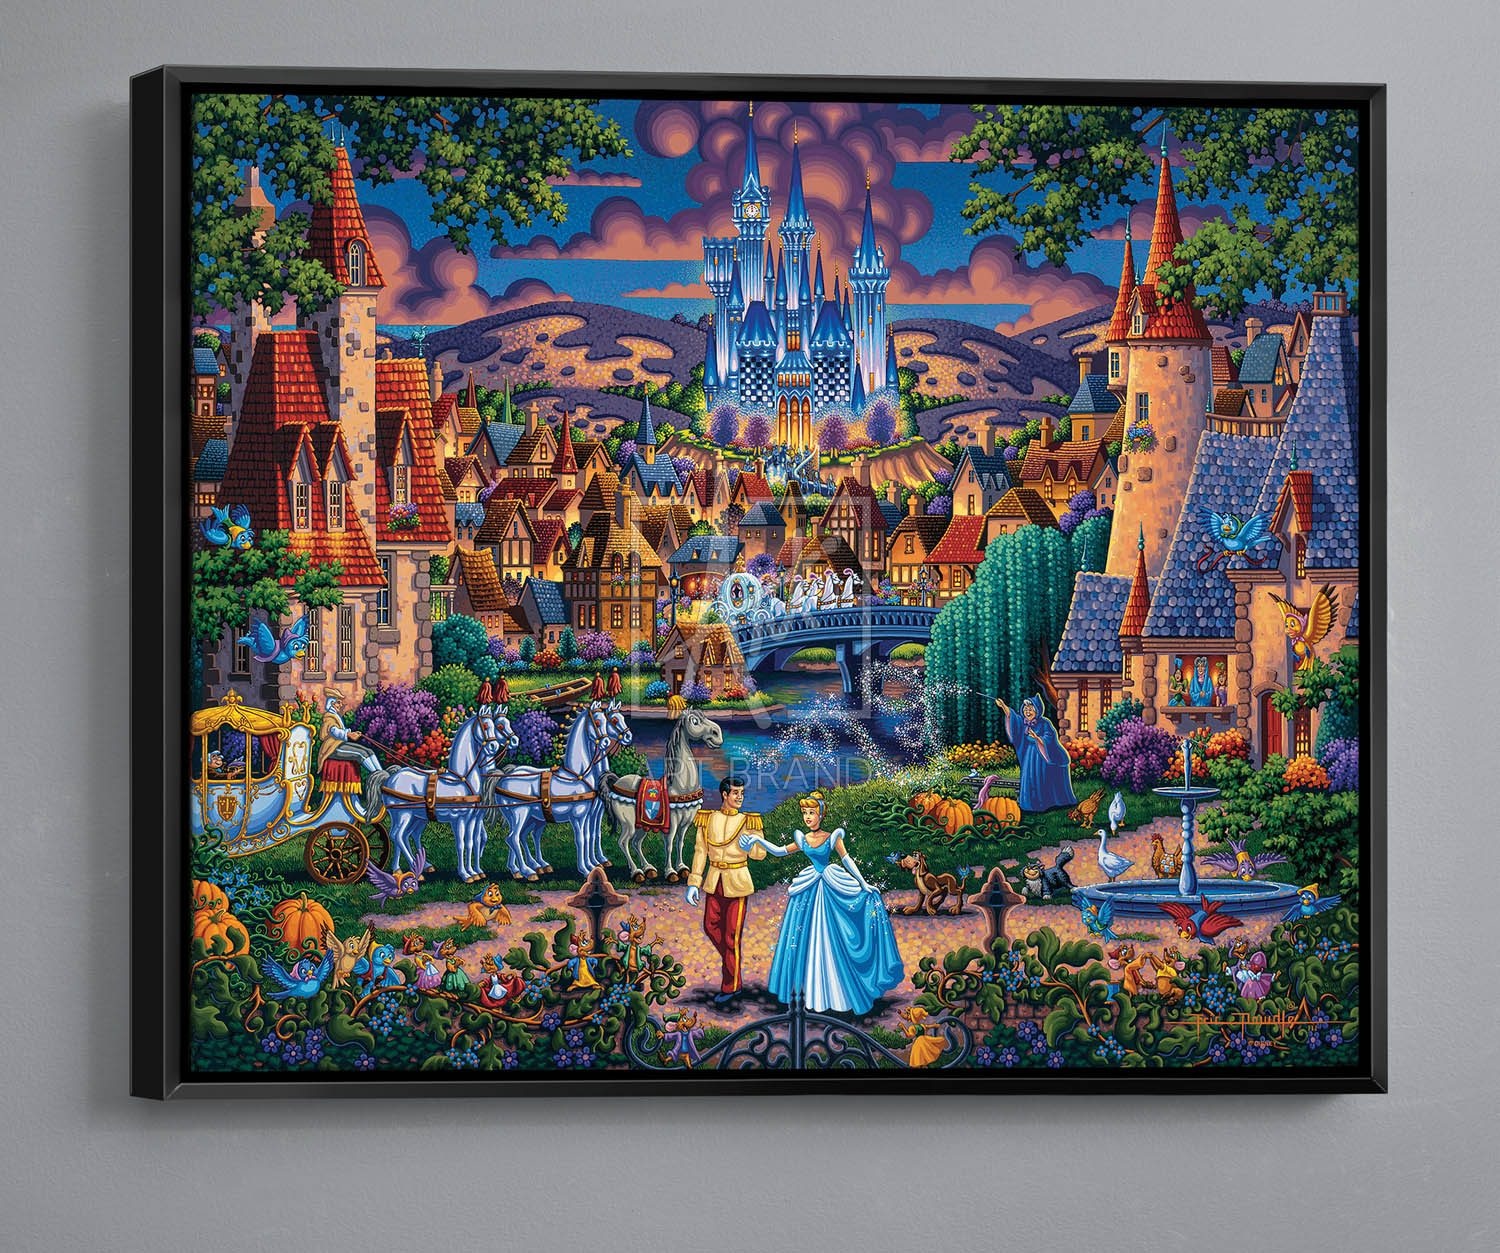 "Cinderella's Enchanted Evening - 30"" x 37"" Canvas Wall Murals"